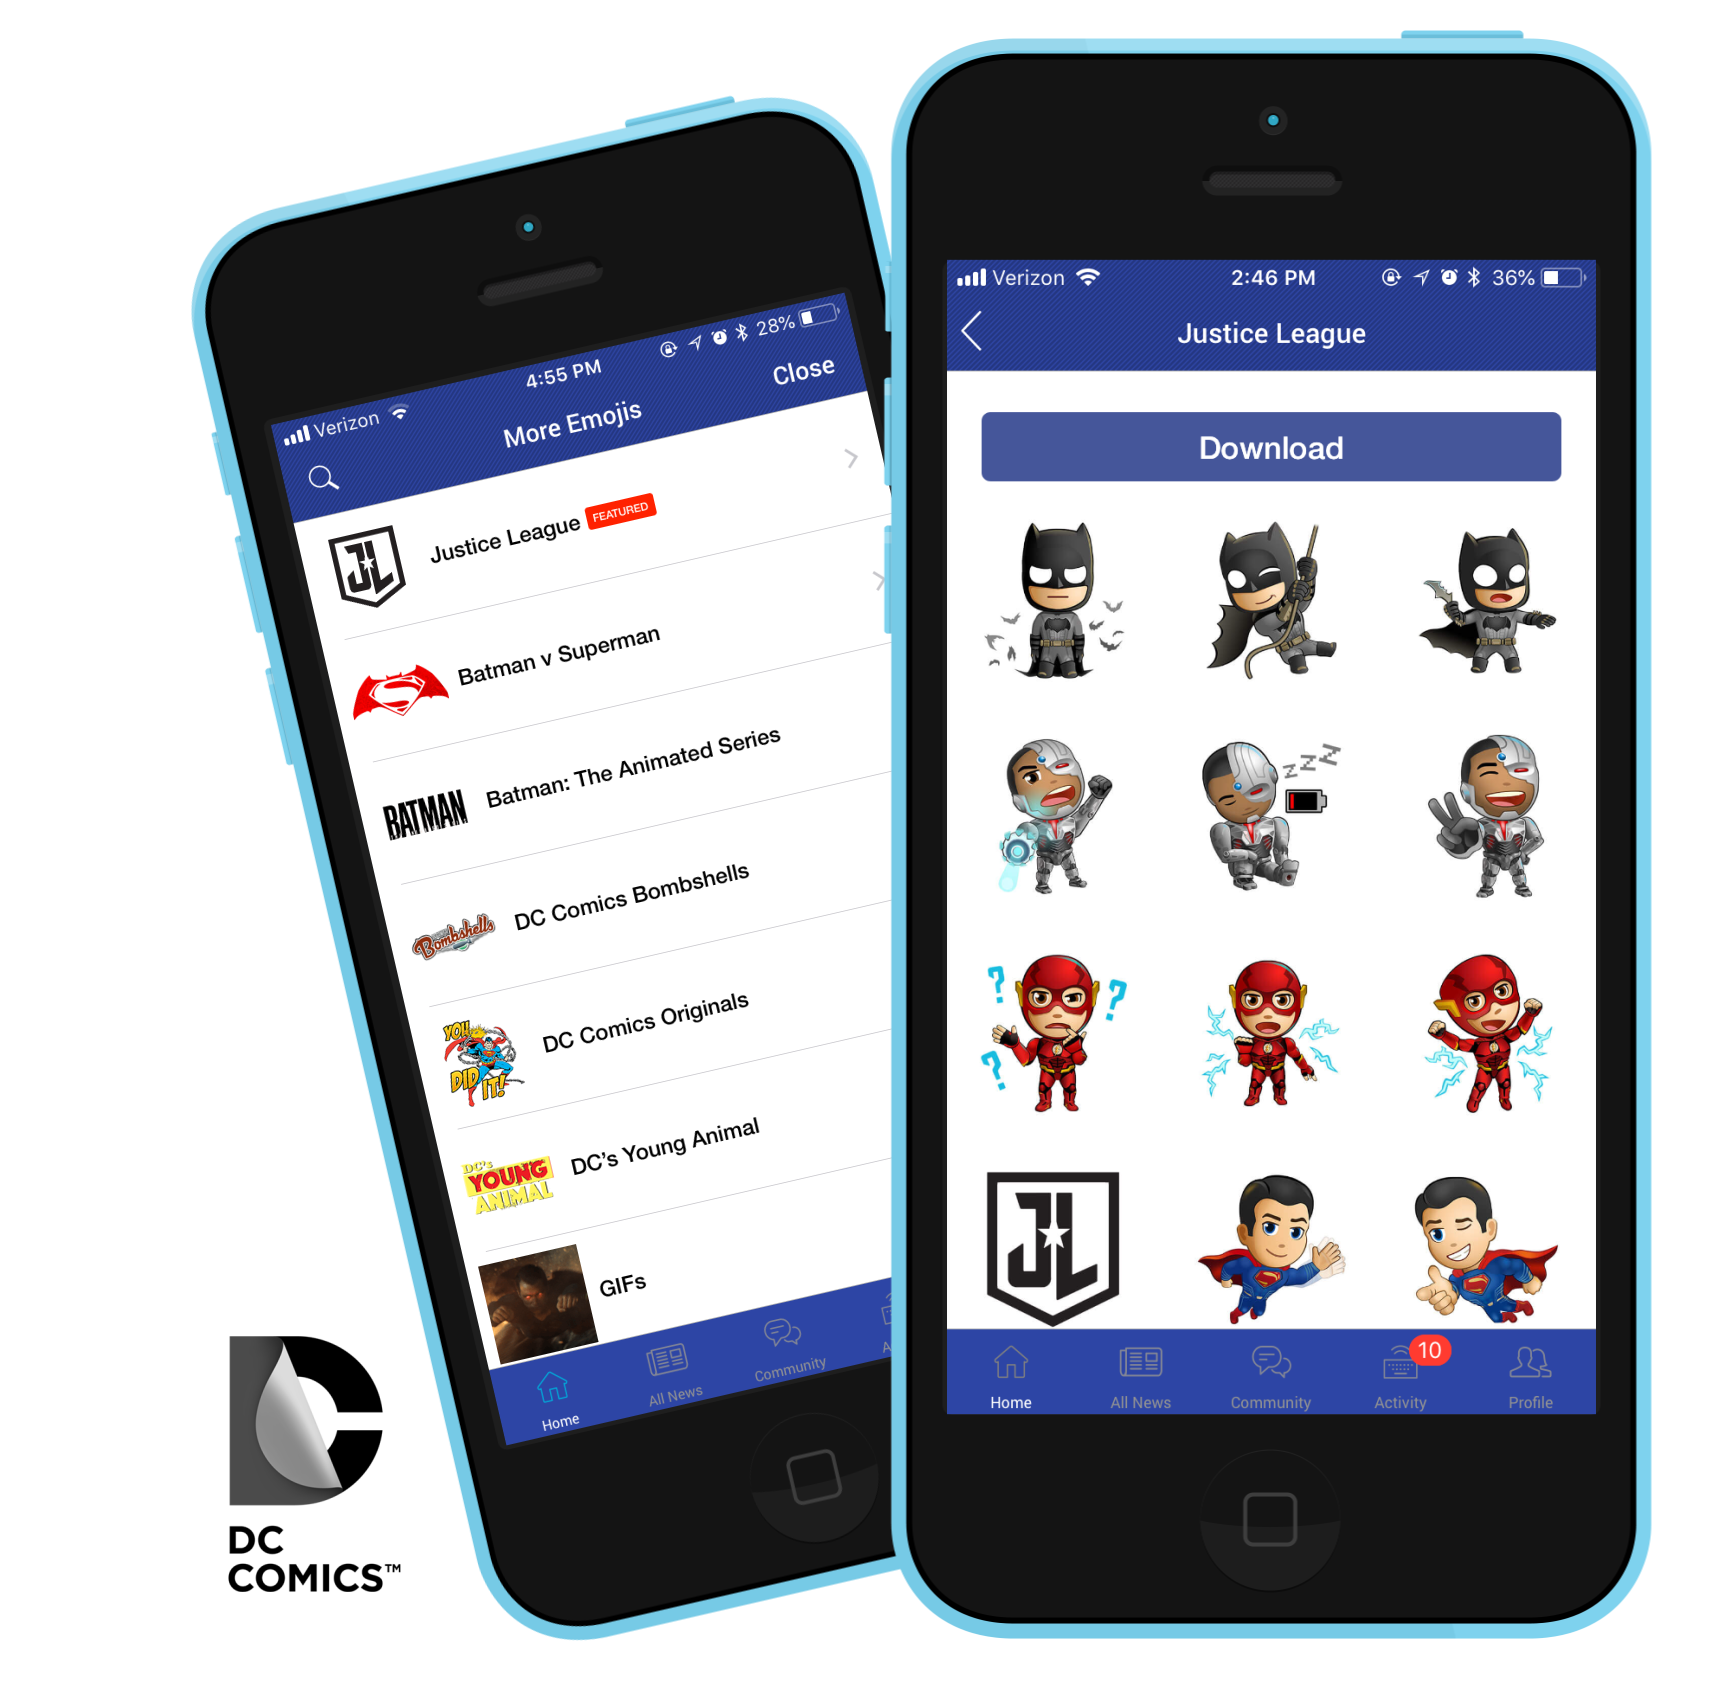 dc all access photo editing sticker sharing app